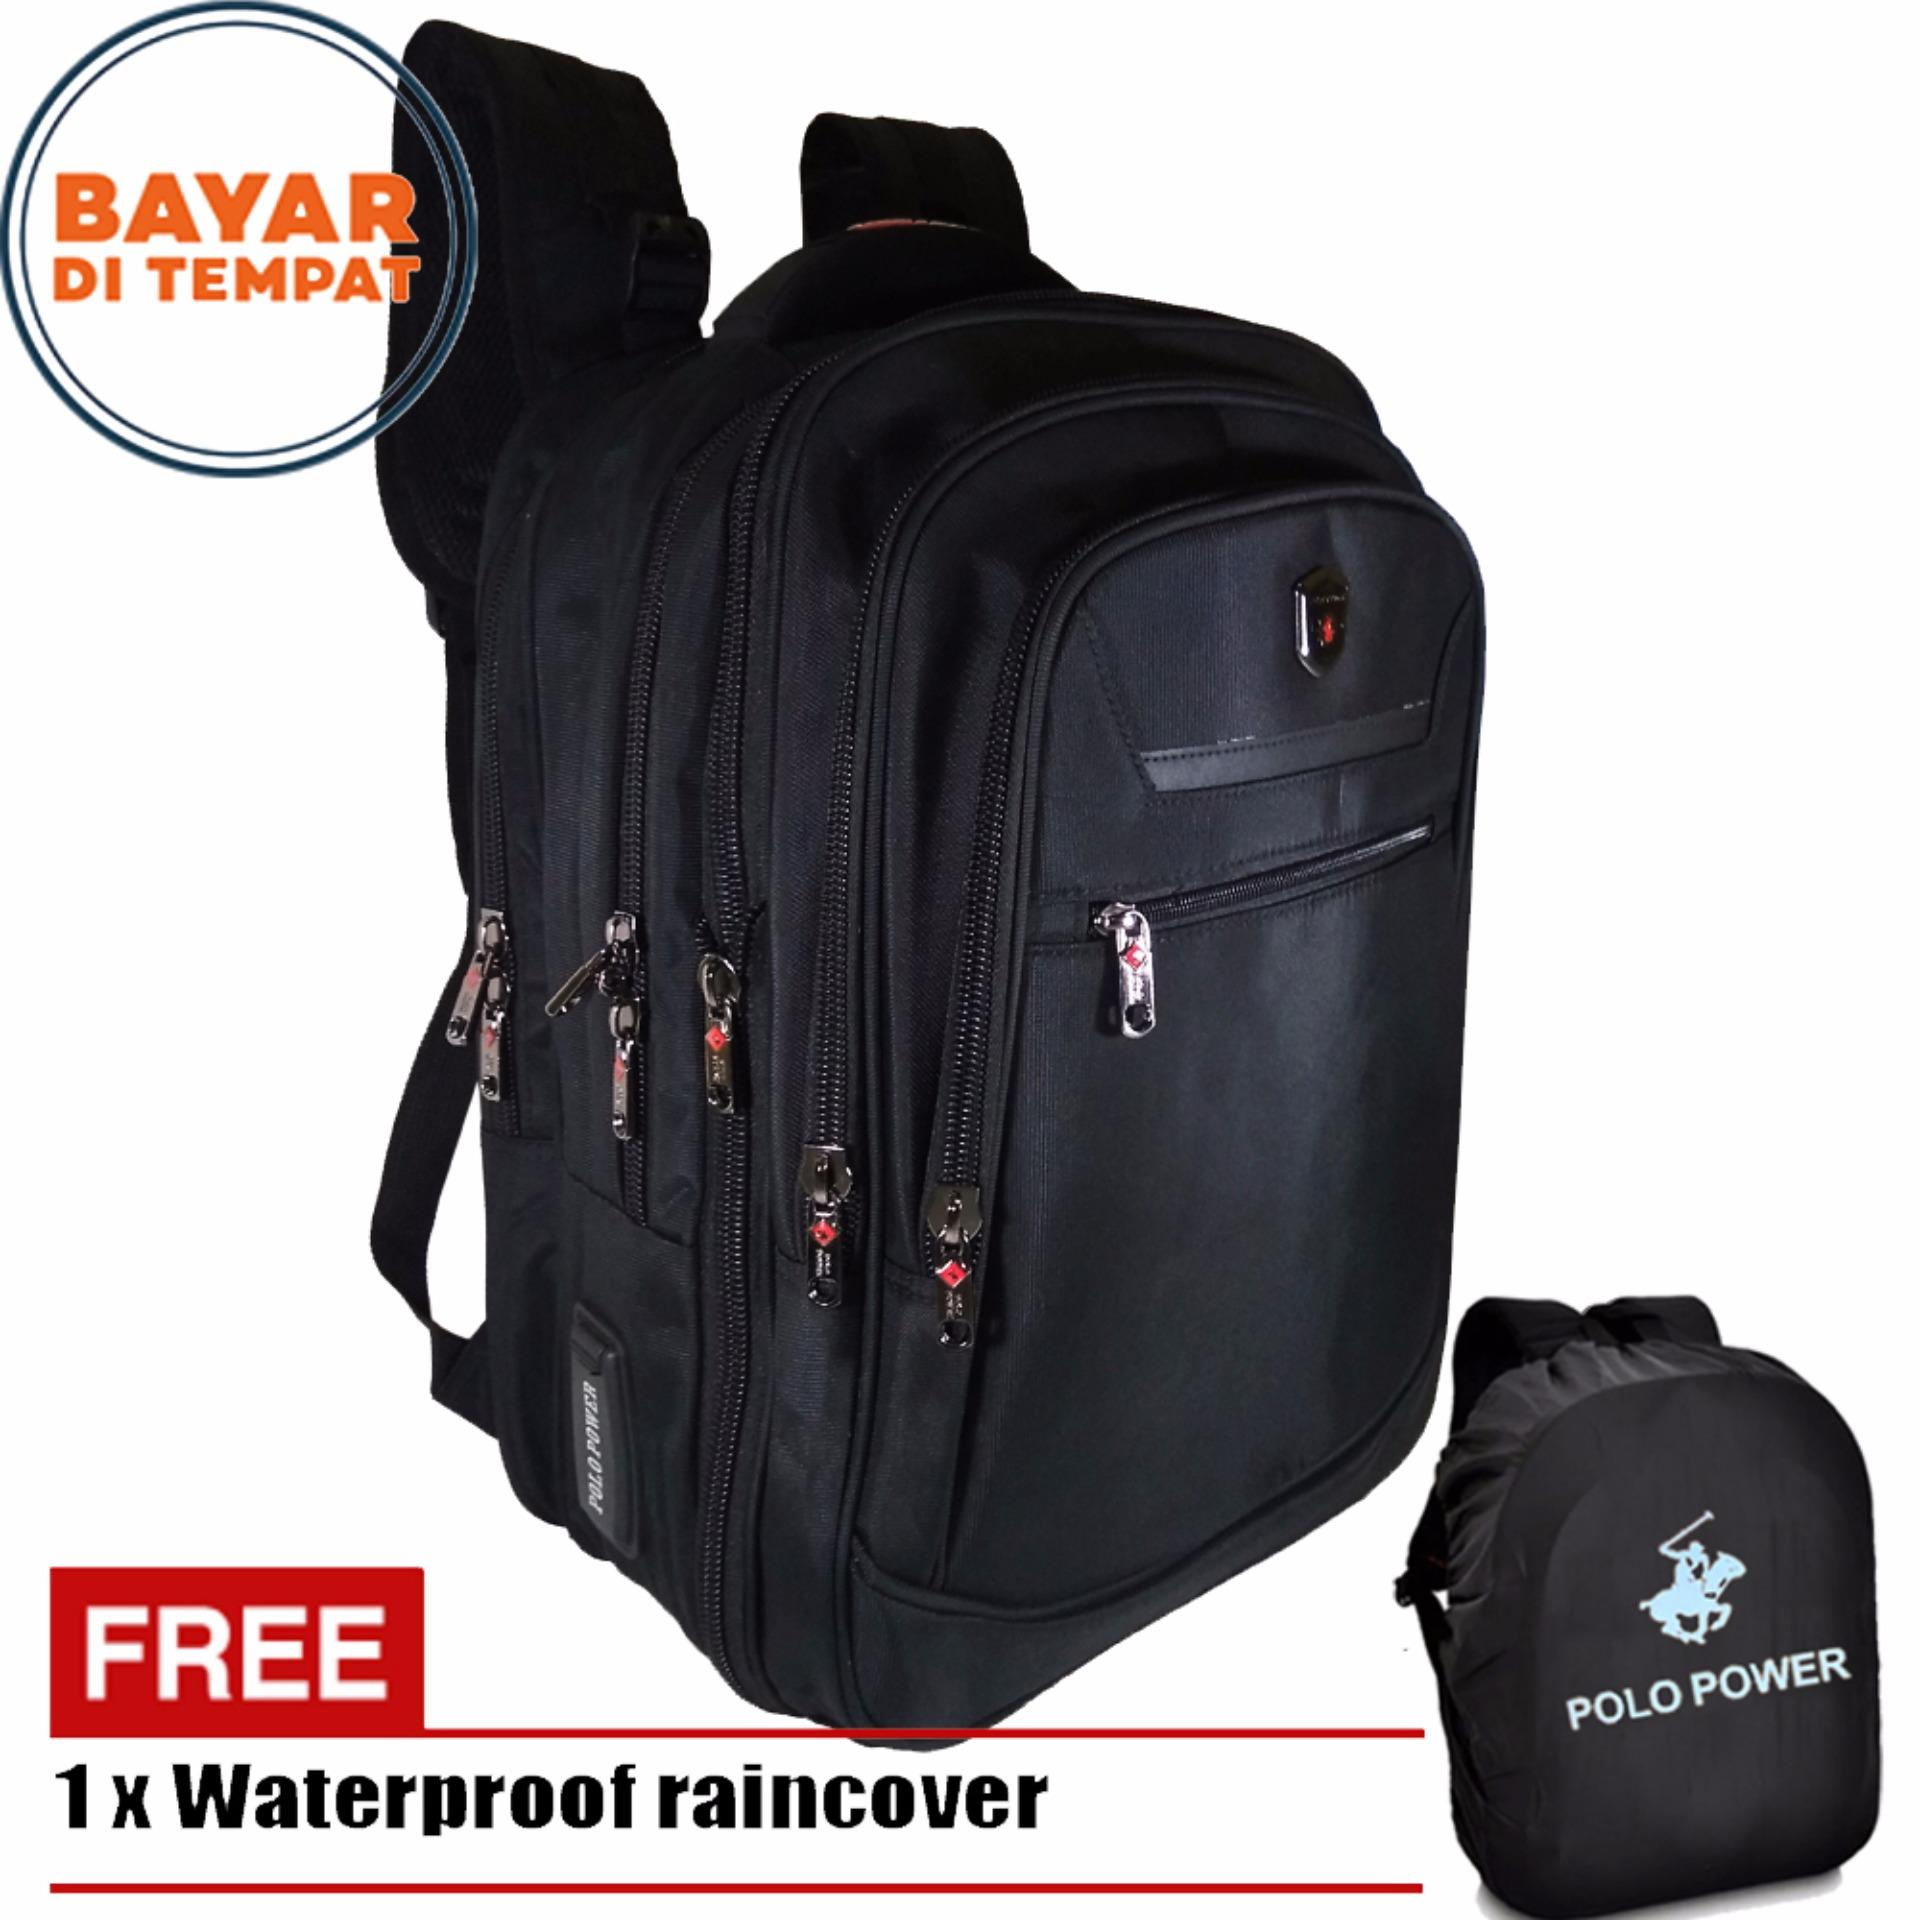 Jual Polo Power Tas Ransel Pria 18 Inchi Expandable 185003 Highest Spec Polo Backpack Import Original Black Raincover Di Bawah Harga